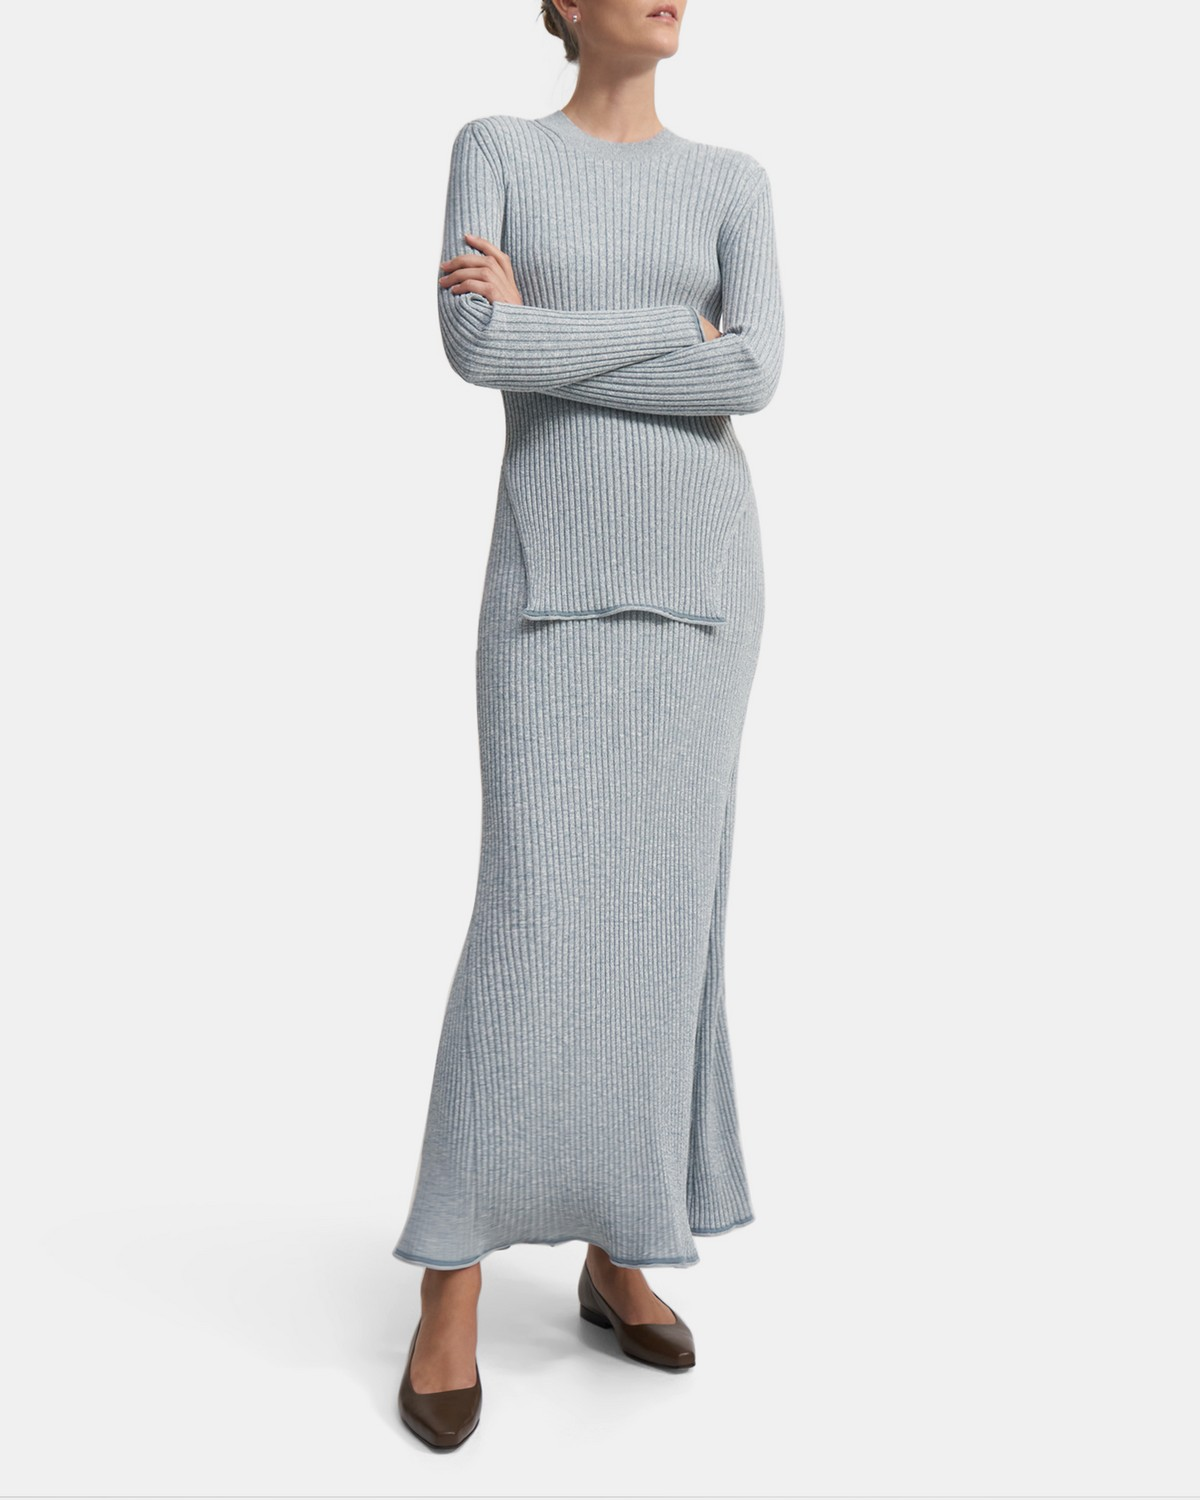 Ribbed Skirt in Compact Knit